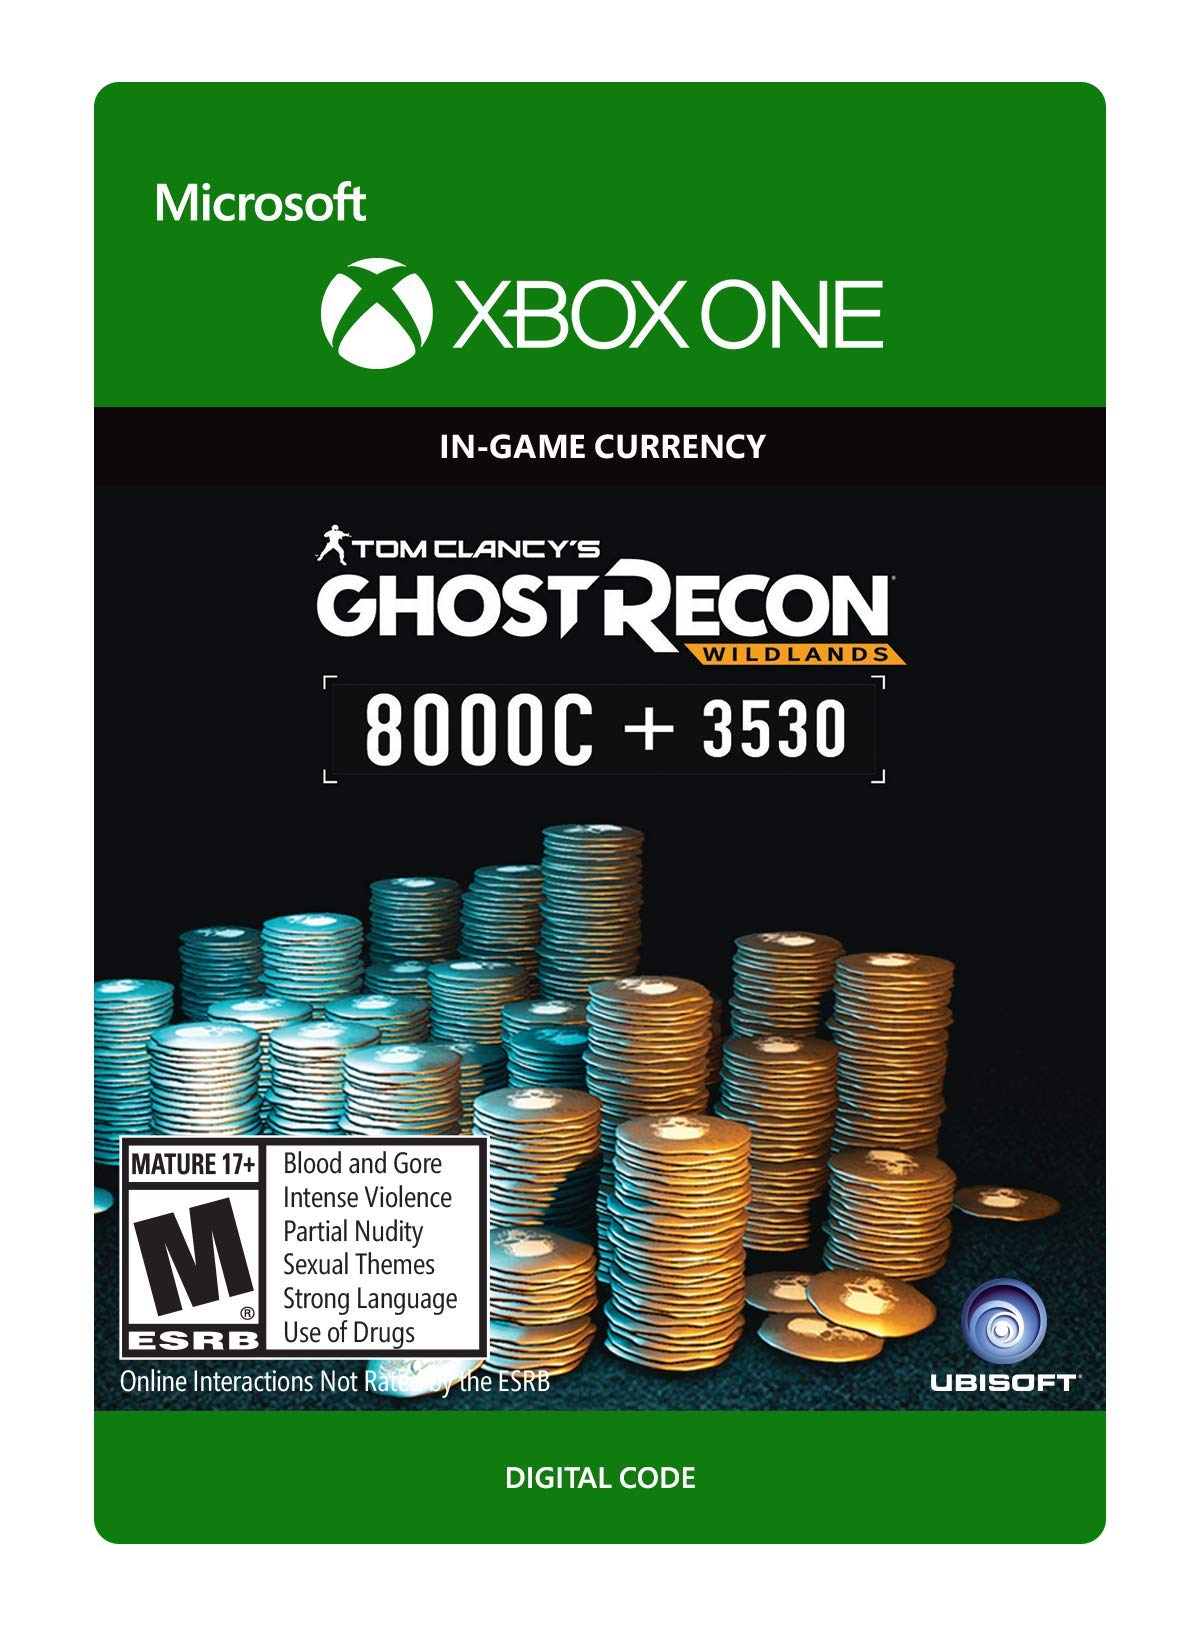 Tom Clancy's Ghost Recon Wildlands Currency pack 11530 GR credits - Xbox One [Digital Code]